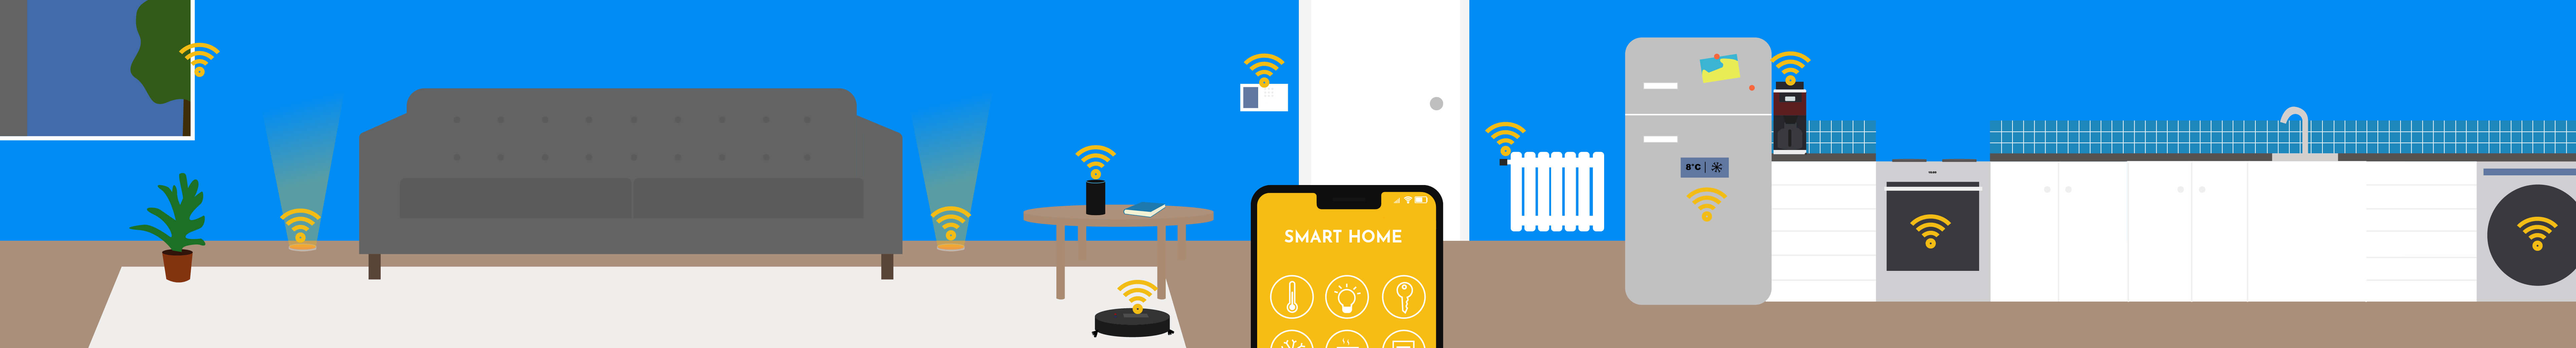 Smart Home Ratgeber